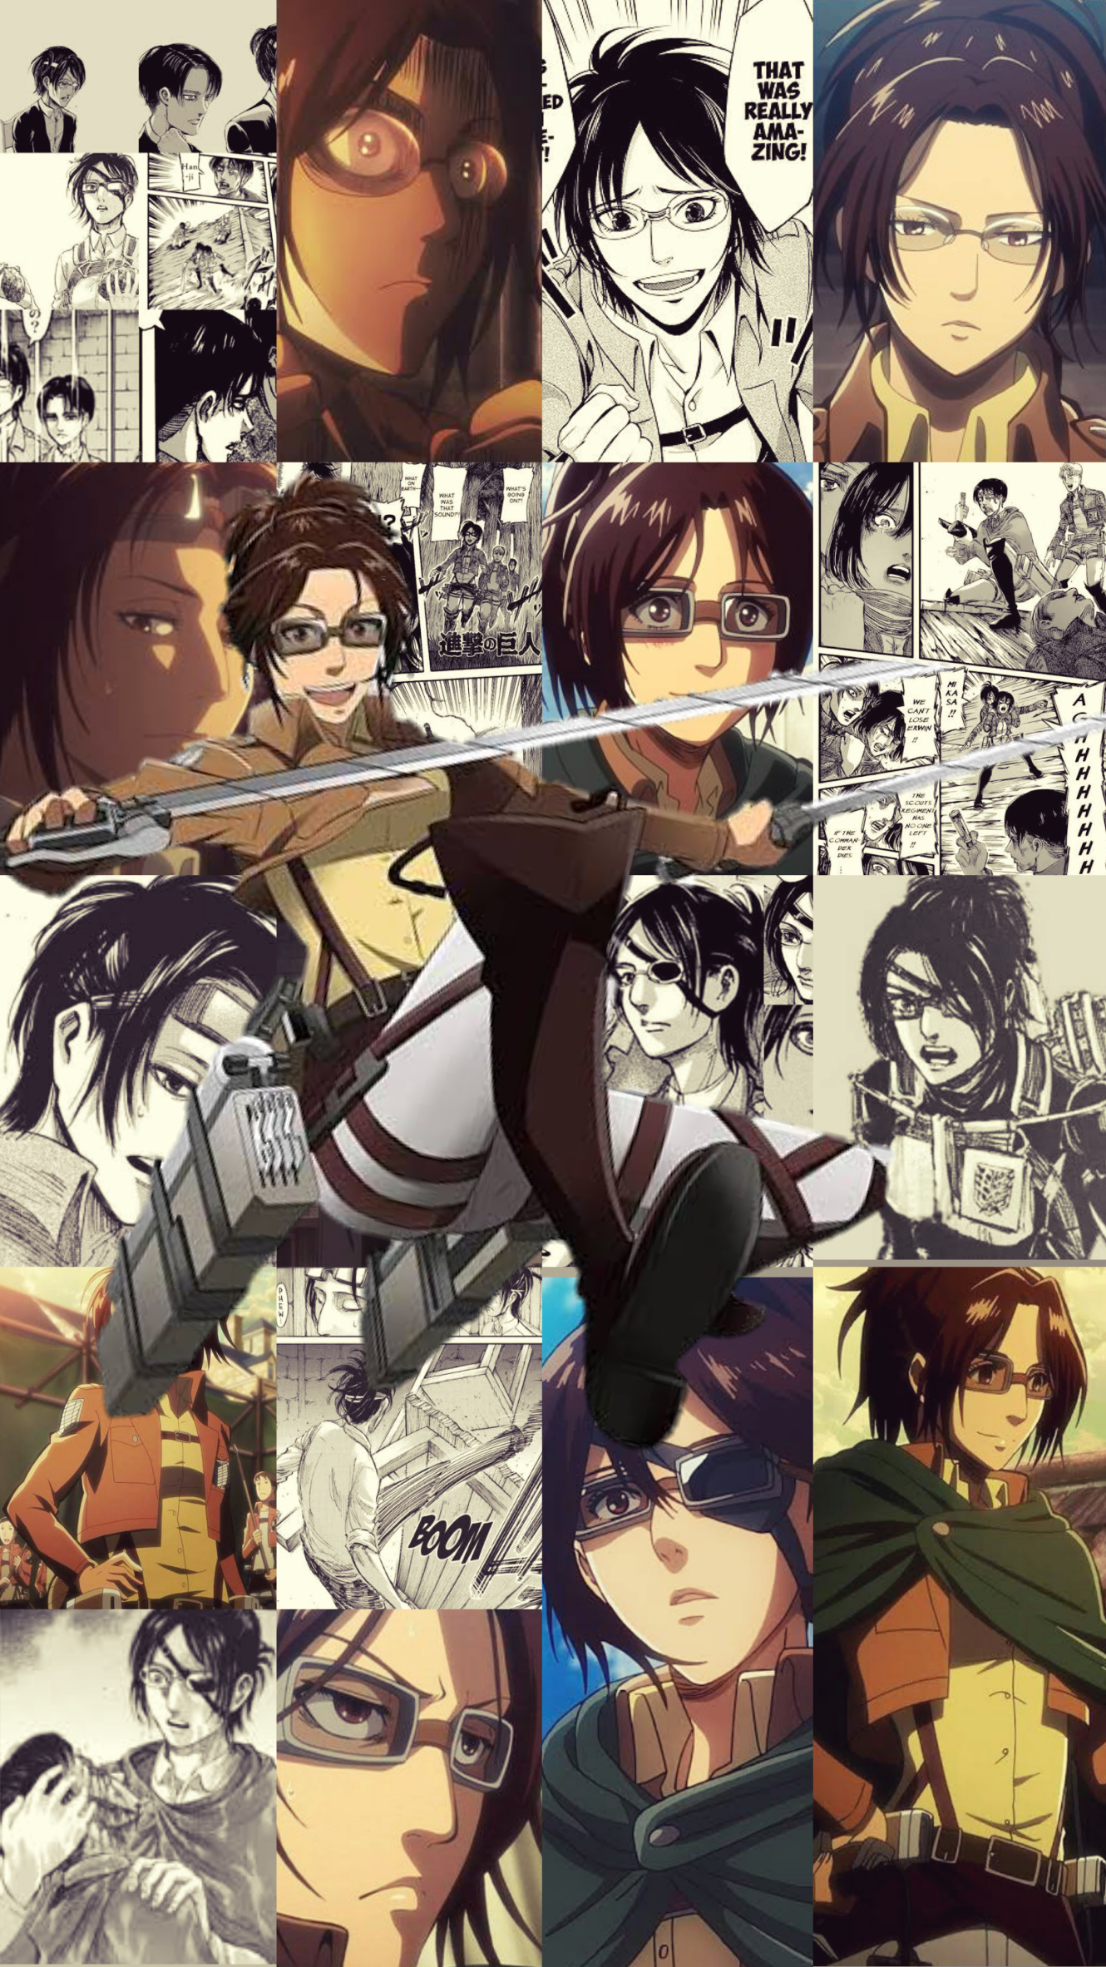 Hange Zoe Cellphone Wallpaper Shingeki No Kyojin Attack On Titan Attack On Titan Anime Attack On Titan Attack On Titan Fanart